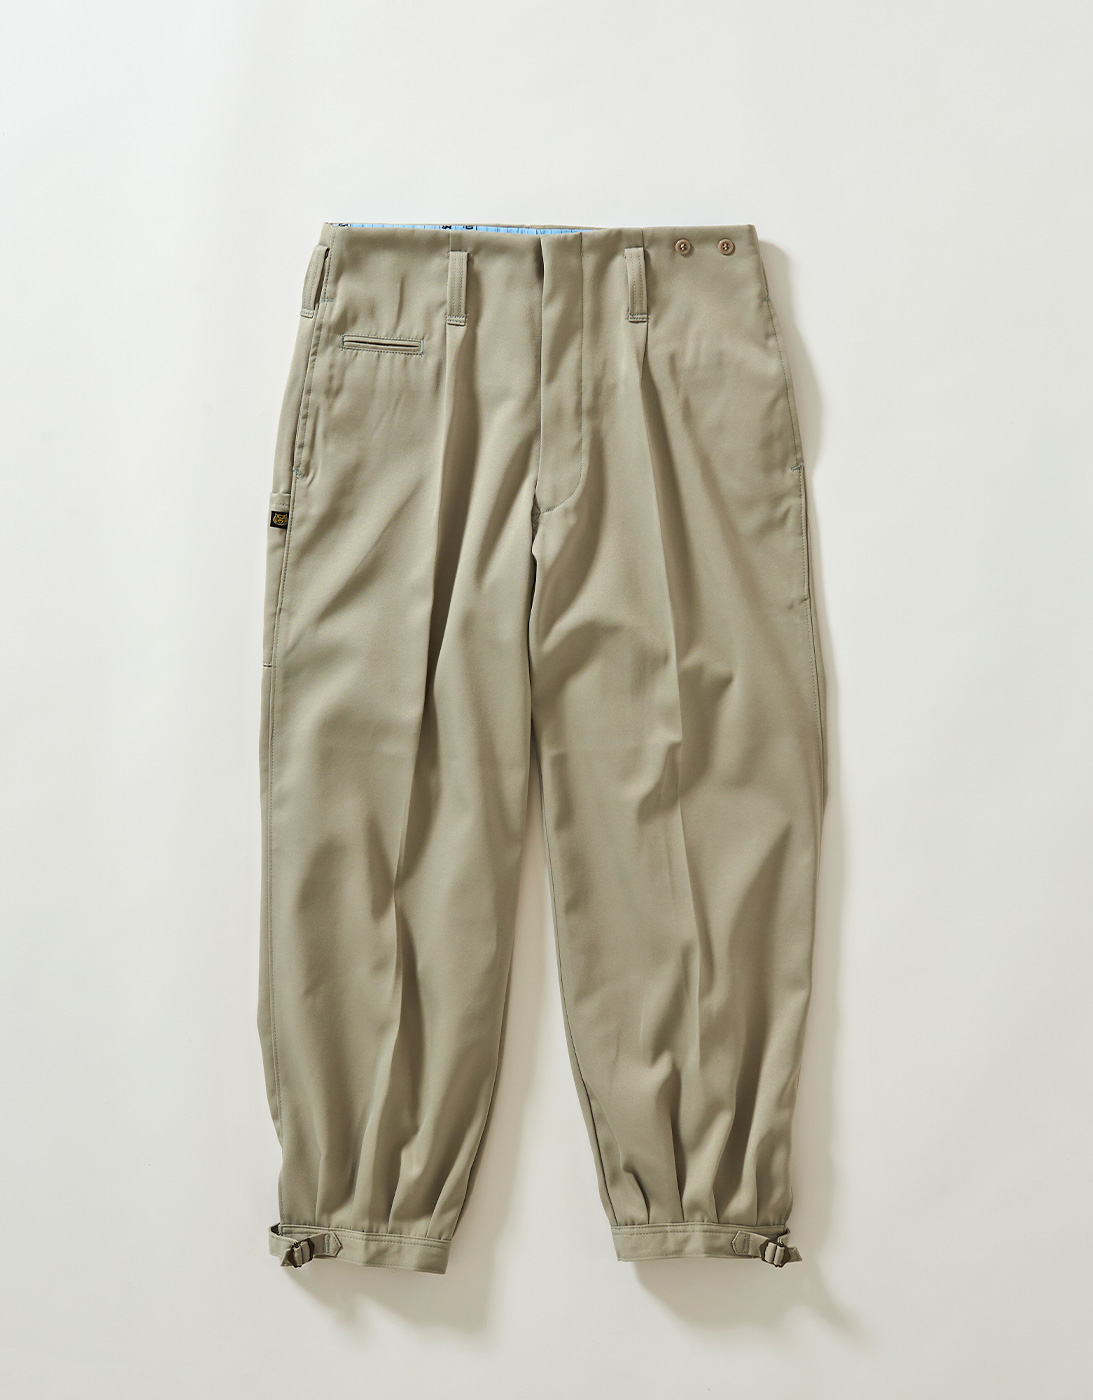 KNICKERBOCKERS PANTS 2530-718 GREEN BEIGE